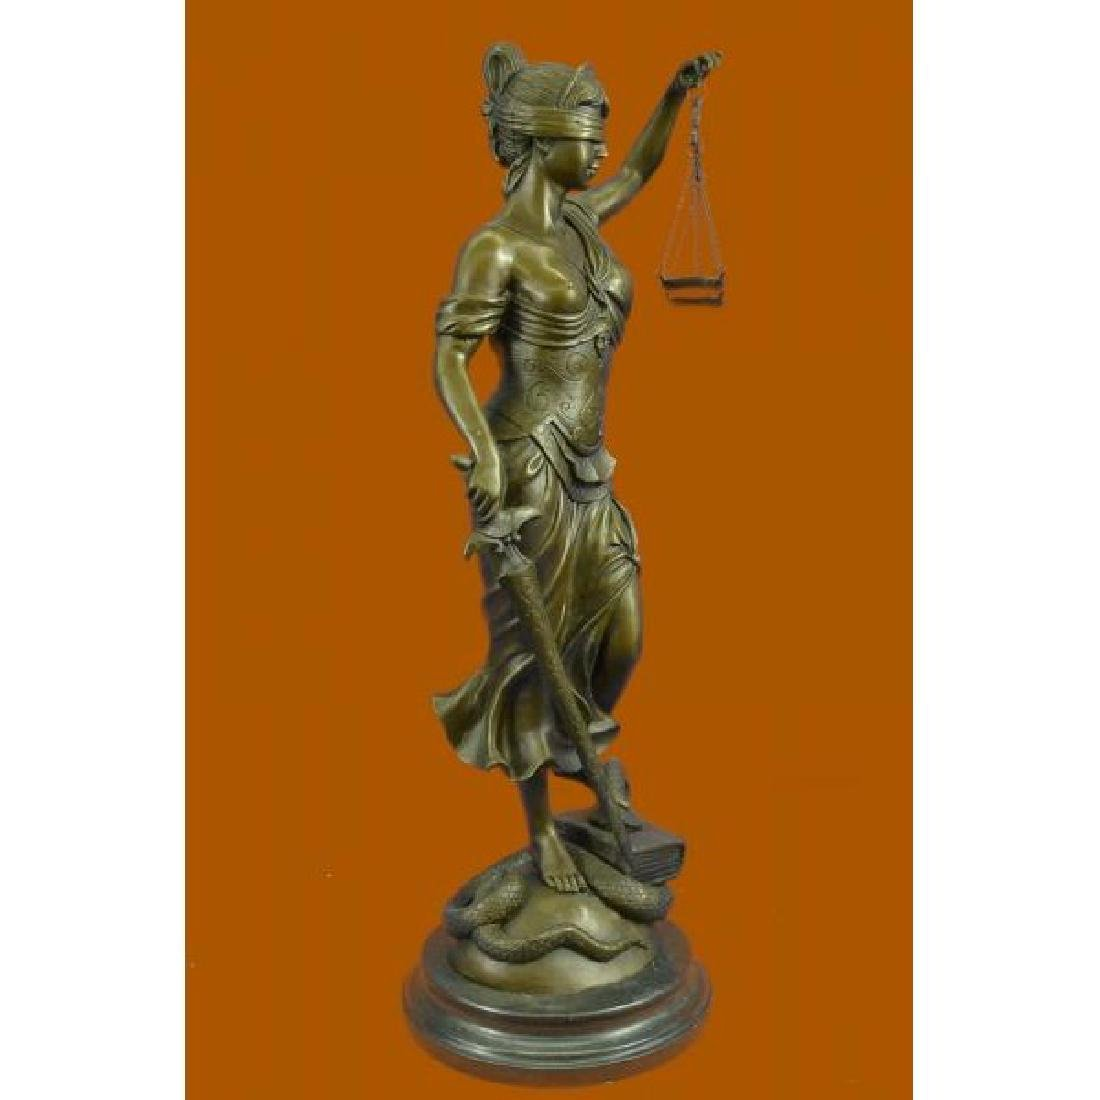 Tall Blind Justice Graduation Lawyer Student Bronze - 4